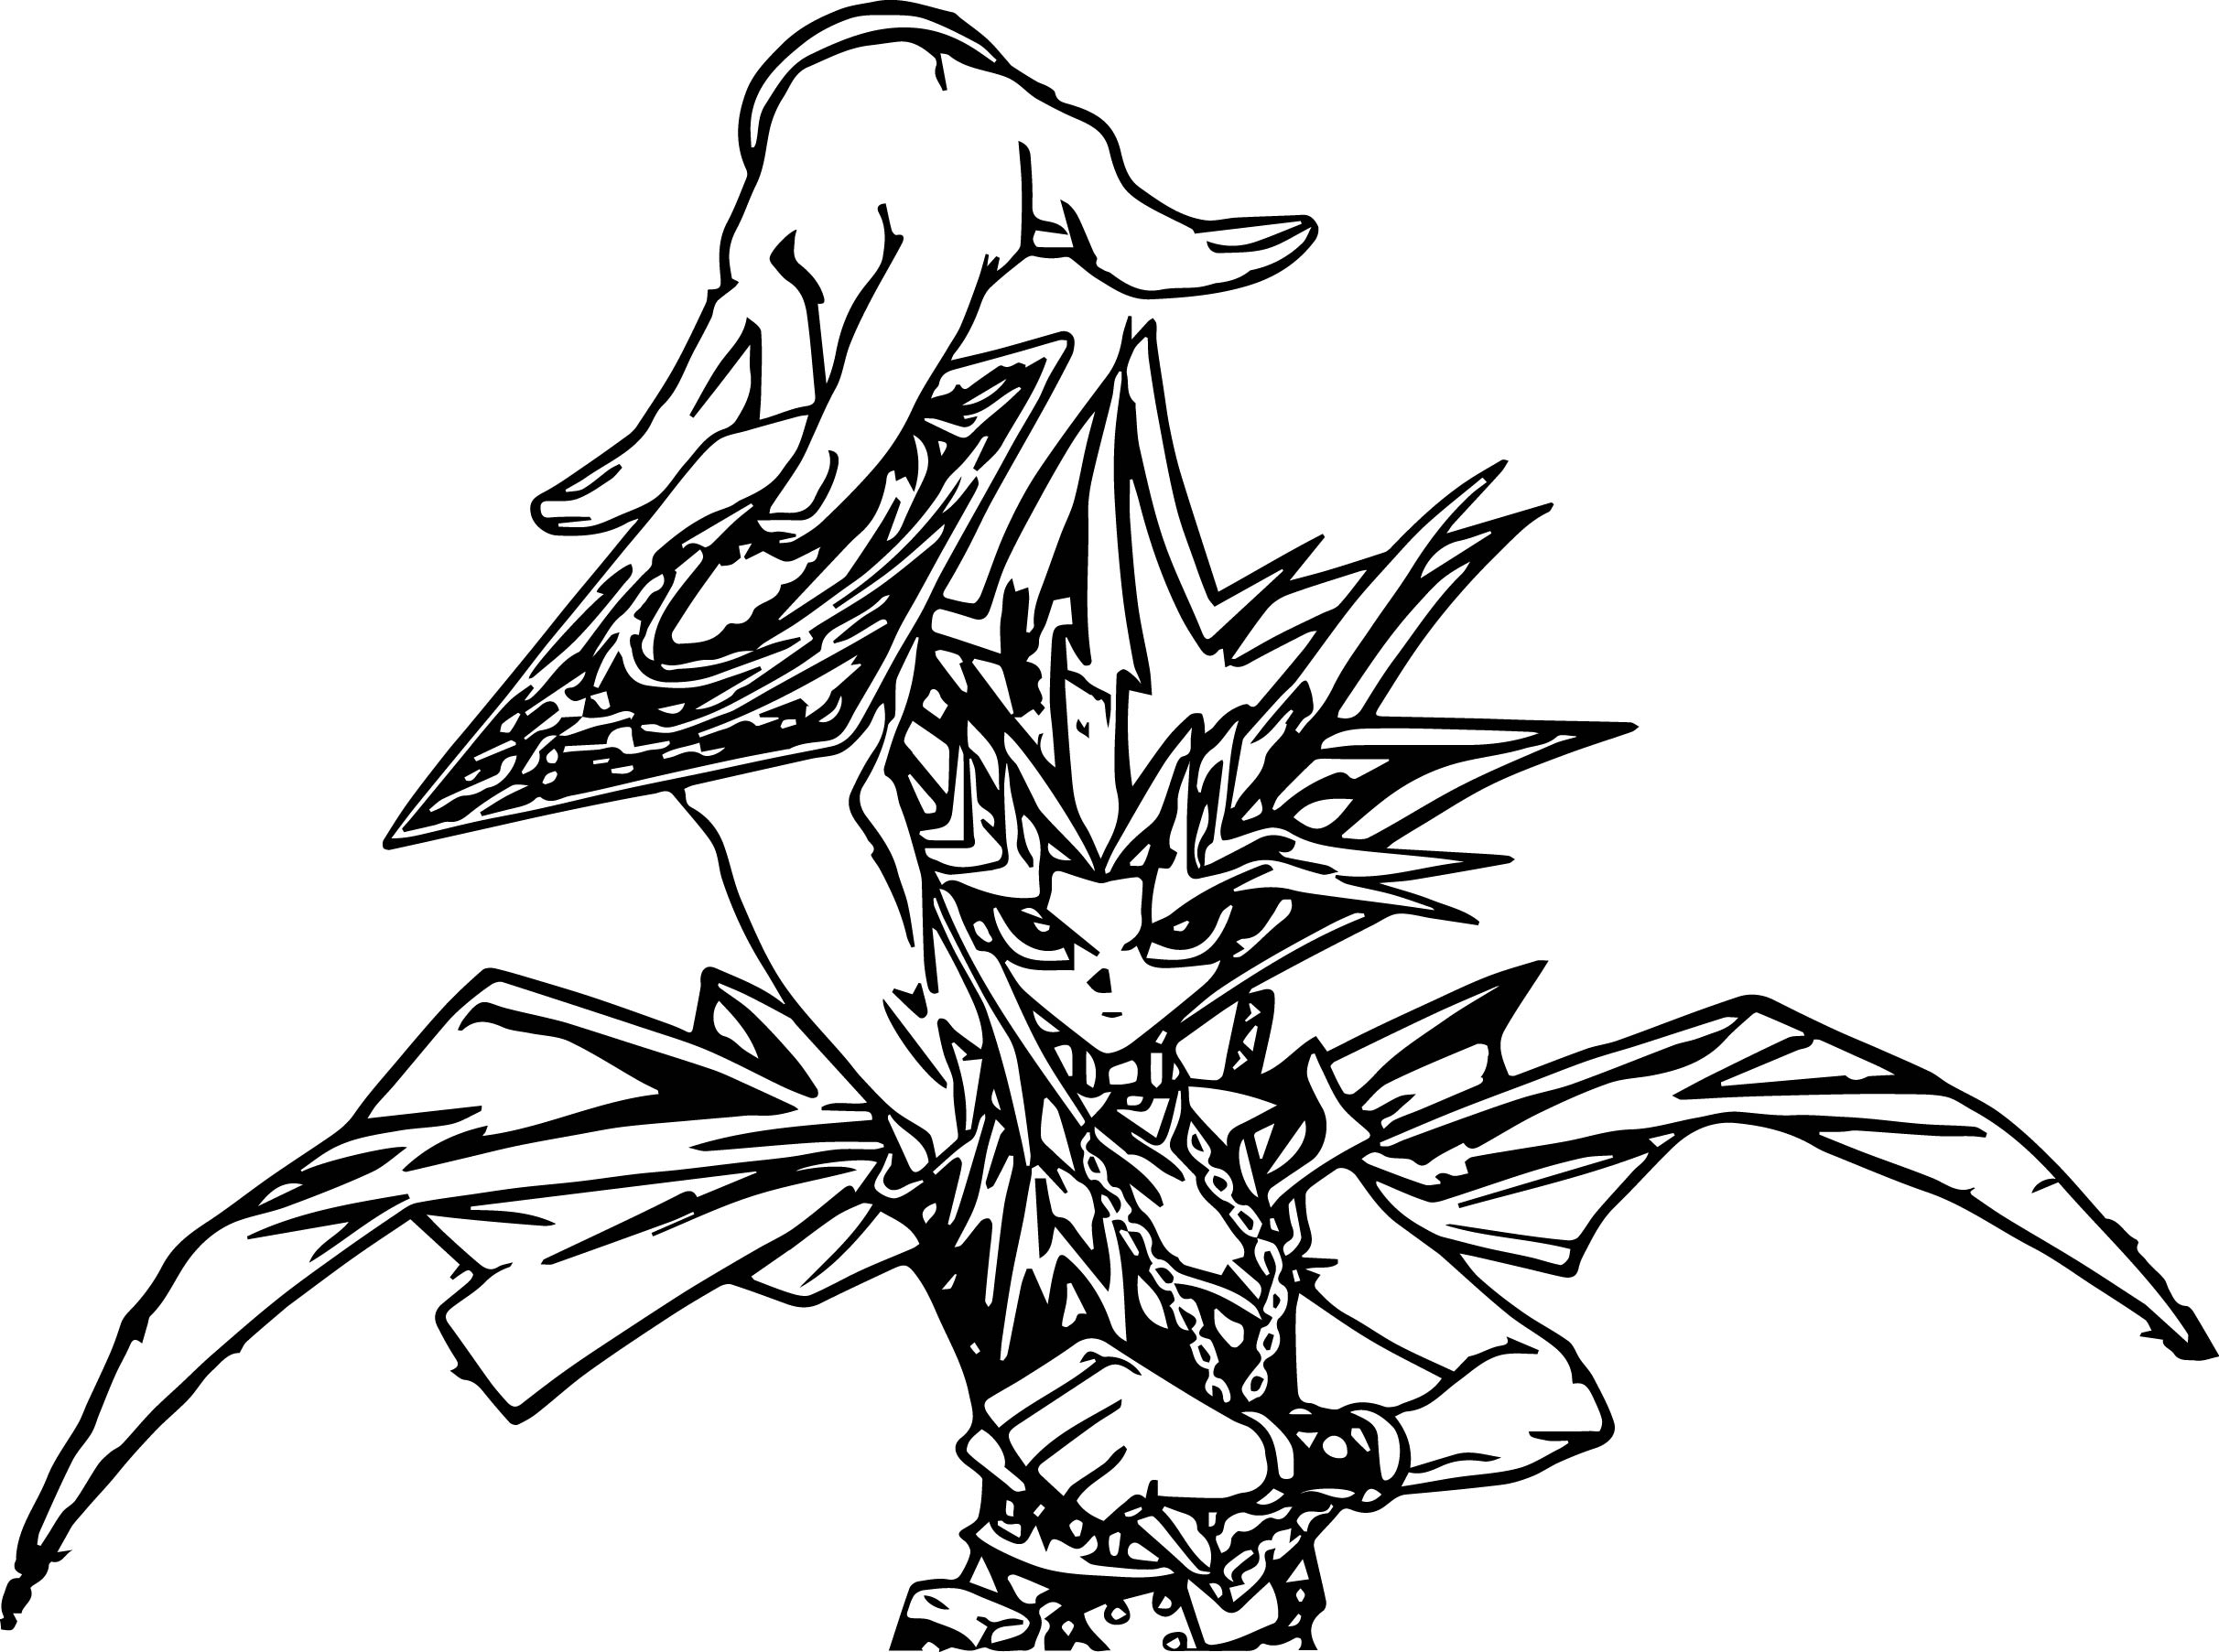 Yu gi oh card coloring page for Card coloring pages